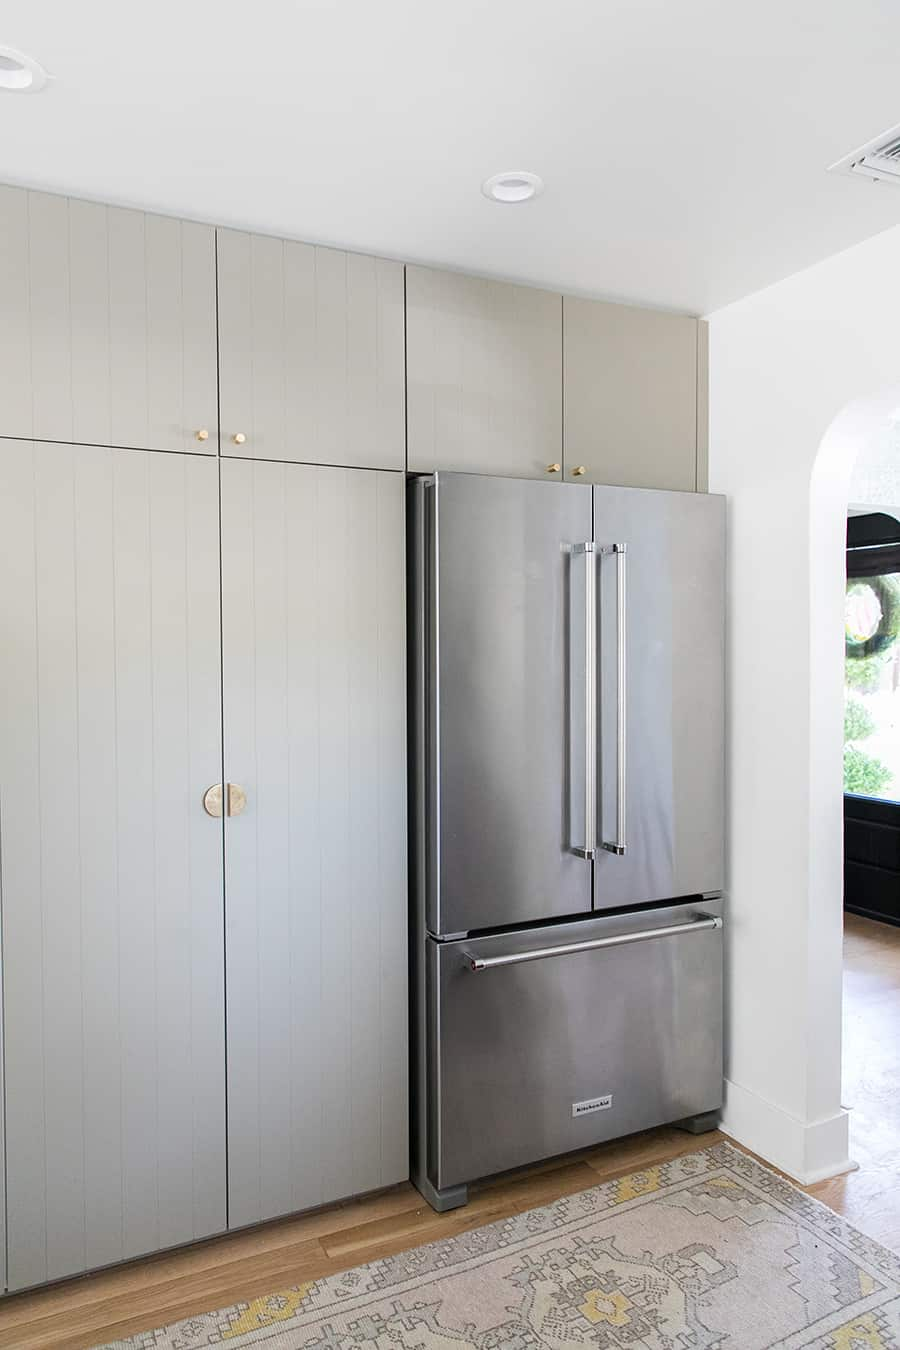 Kitchen Aid refrigerator with green cabinets from Ikea and Semihandmade.